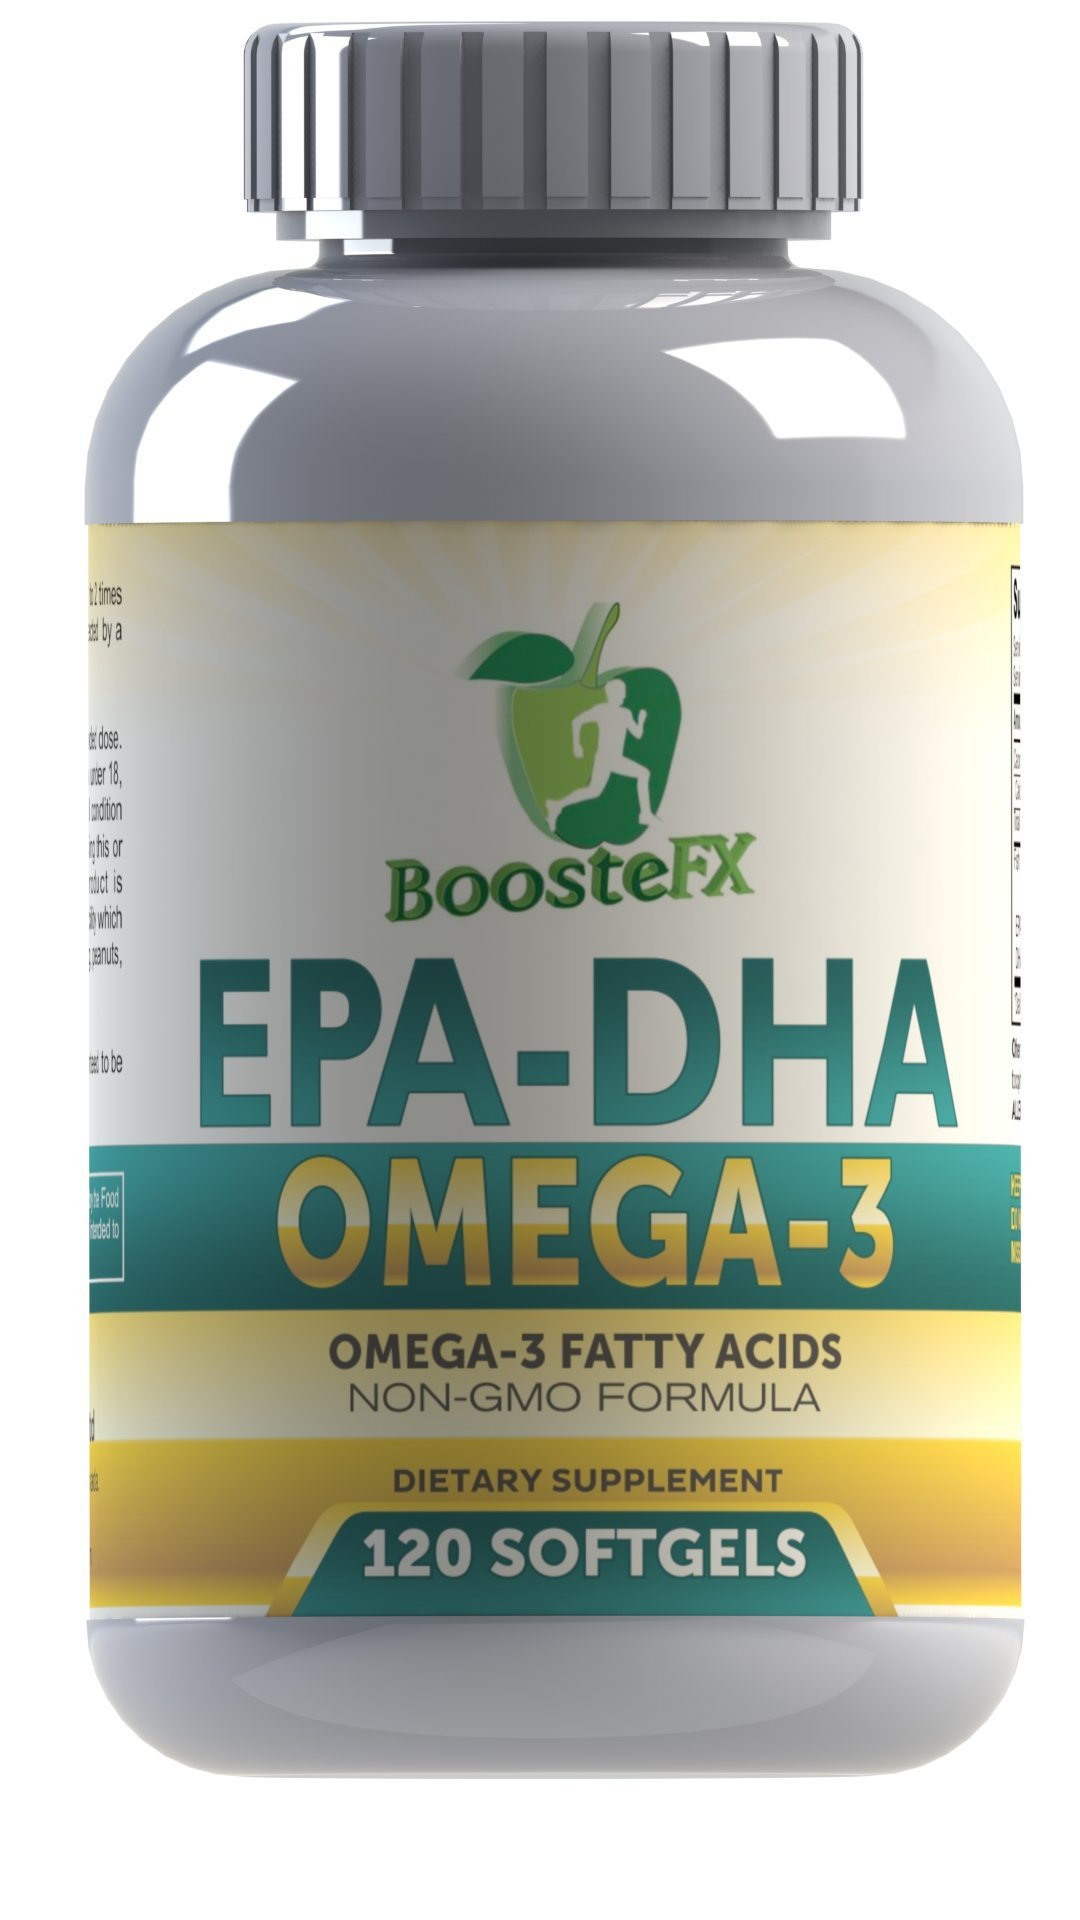 BoosteFX Premium Omega-3 Fish Oils - With EPA, DHA & Omega-3 - For Enhanced Brain Function, Heart Health, Healthy Cell Function. (120 Capsules)